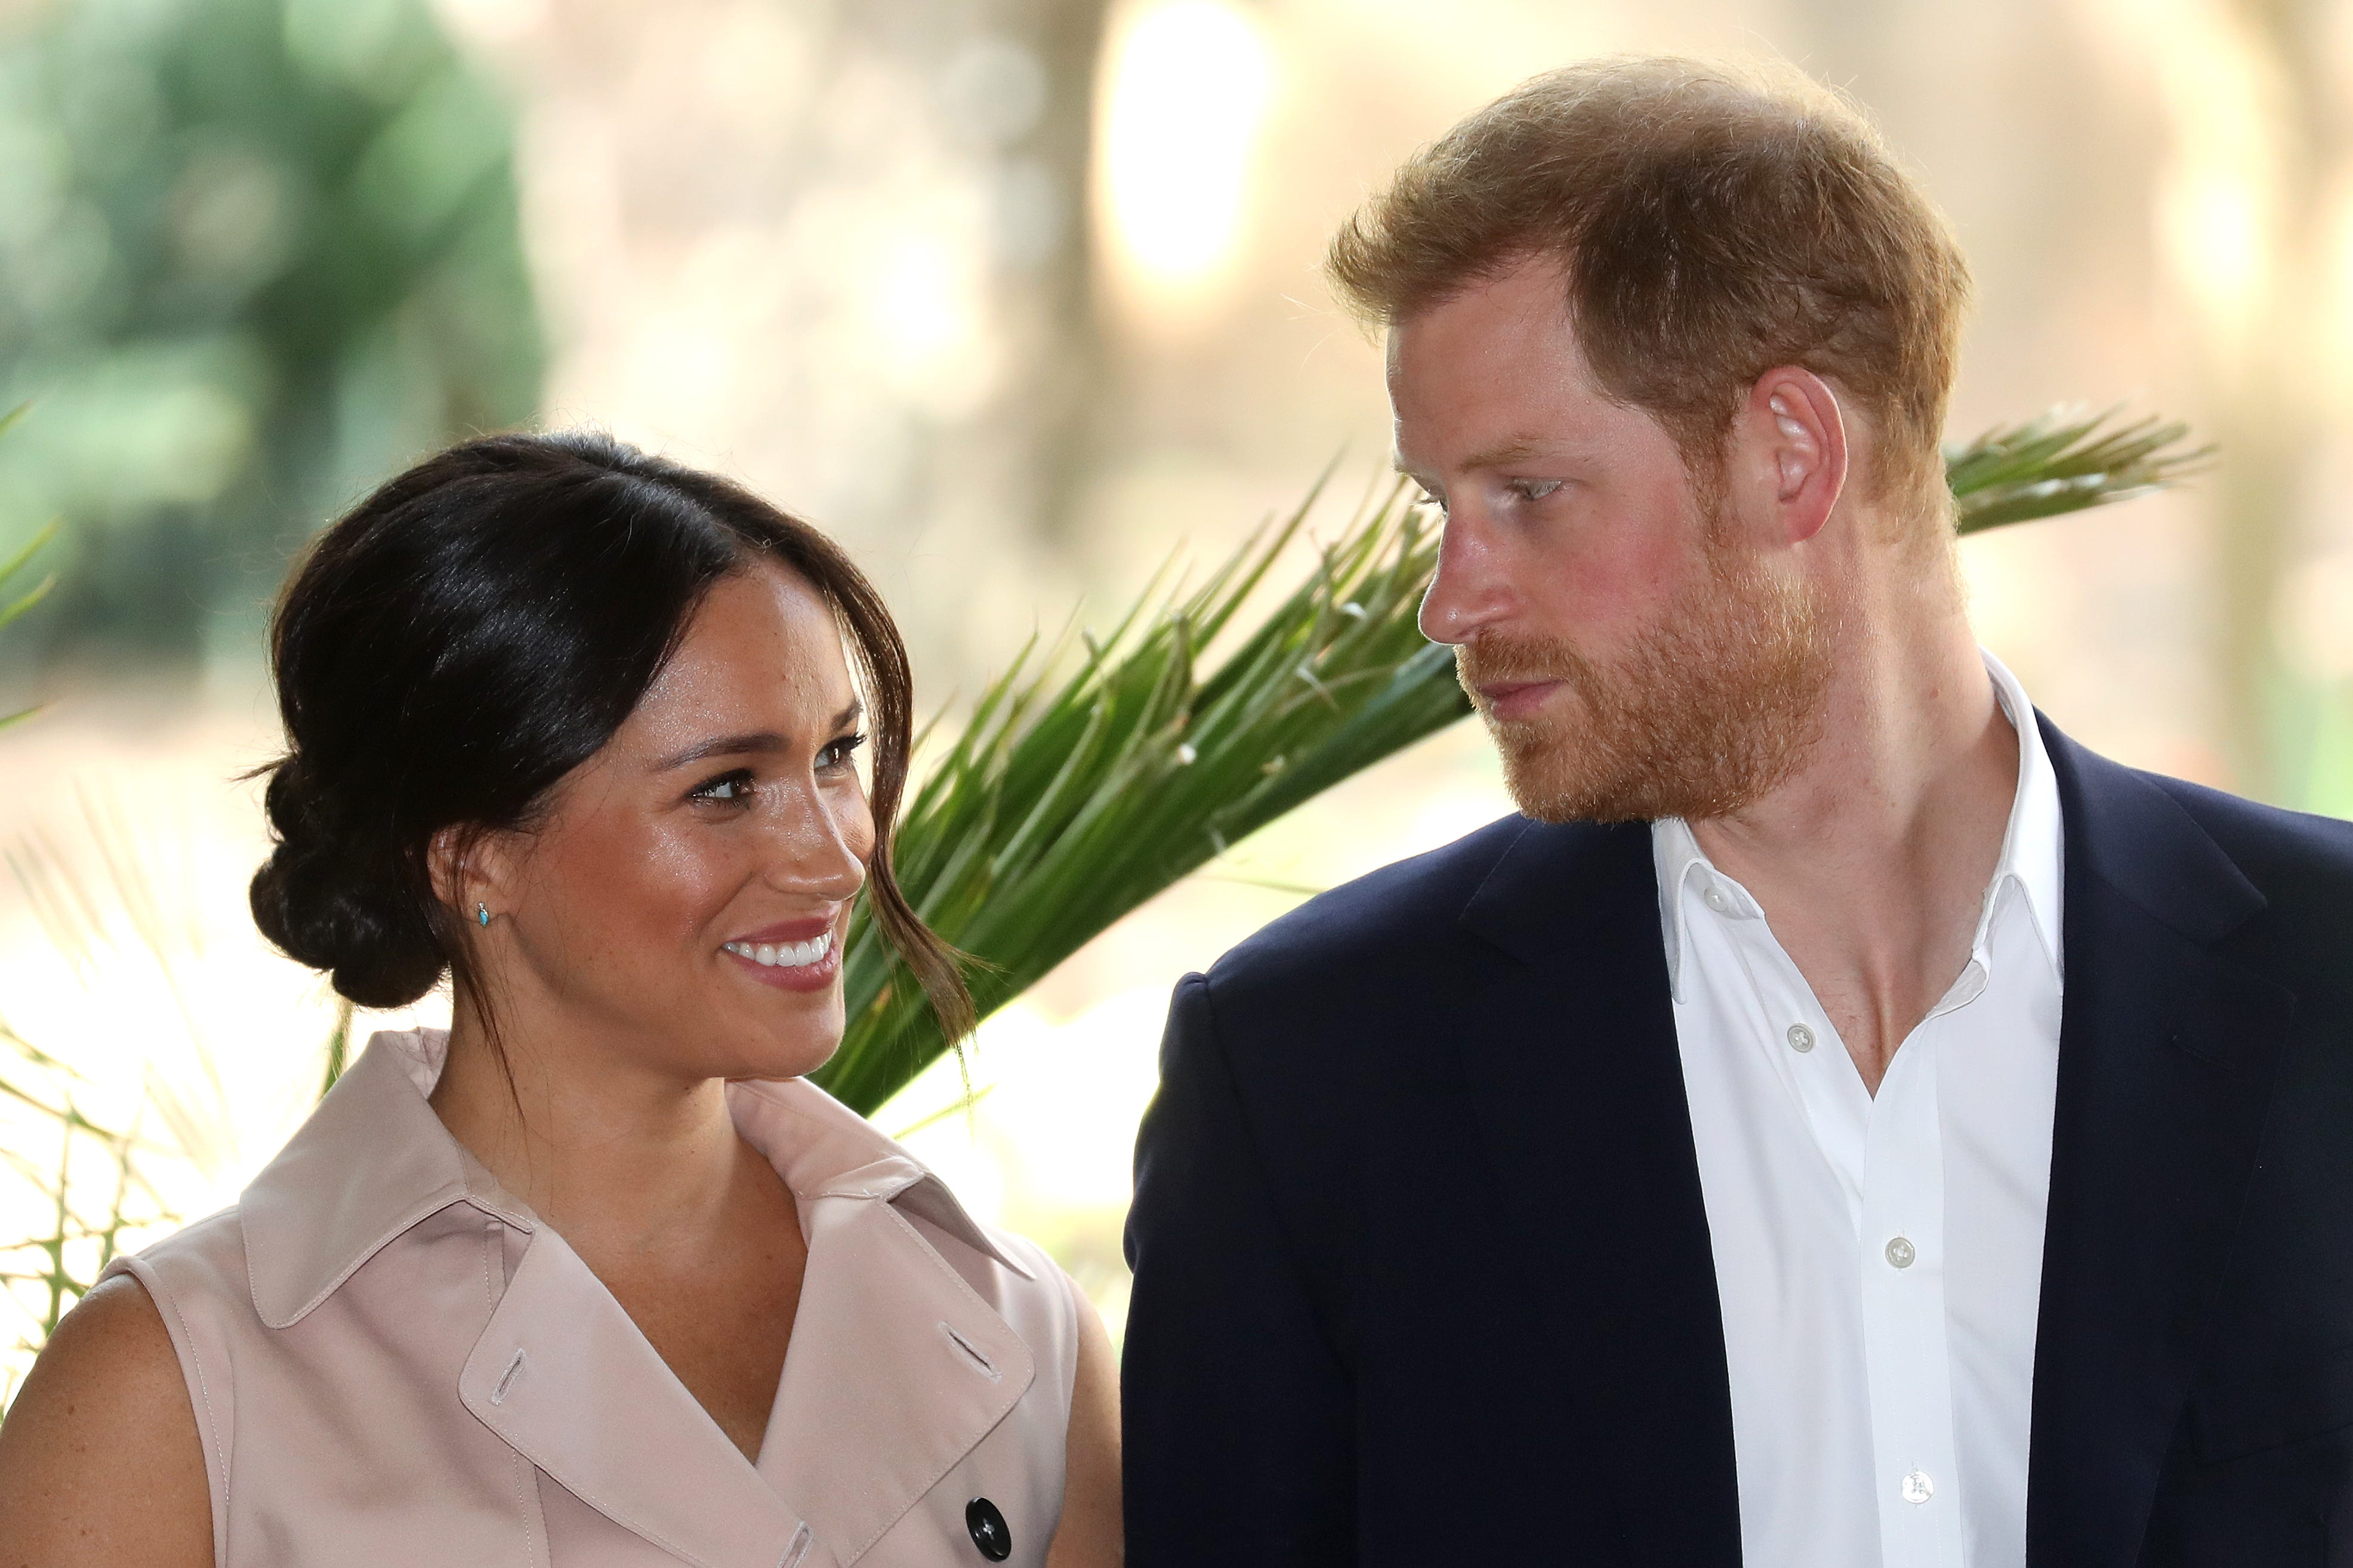 Prince Harry, Duchess Meghan speak out about 'challenging' media backlash in TV interview